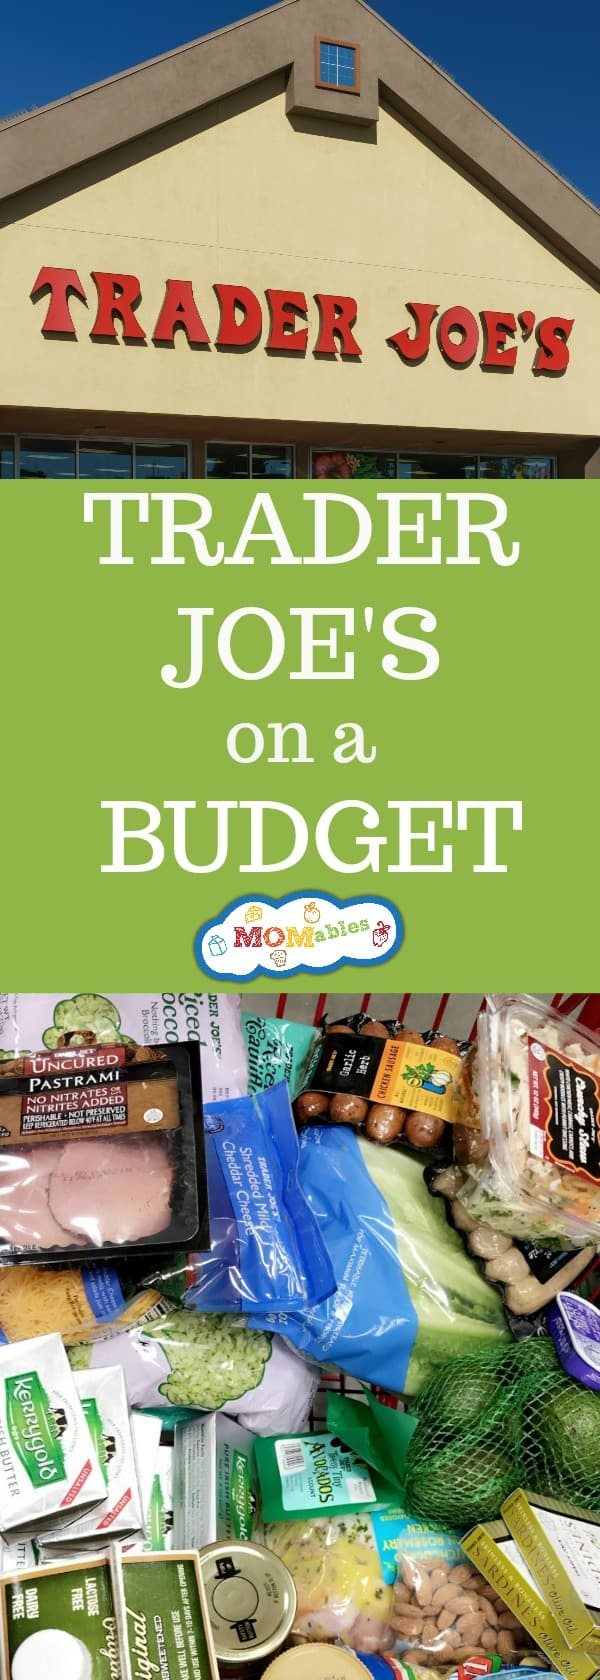 Trader Joe's on a budget? Not a problem! Check out these tips, tricks, and list for all the best deals at one of our favorite places.